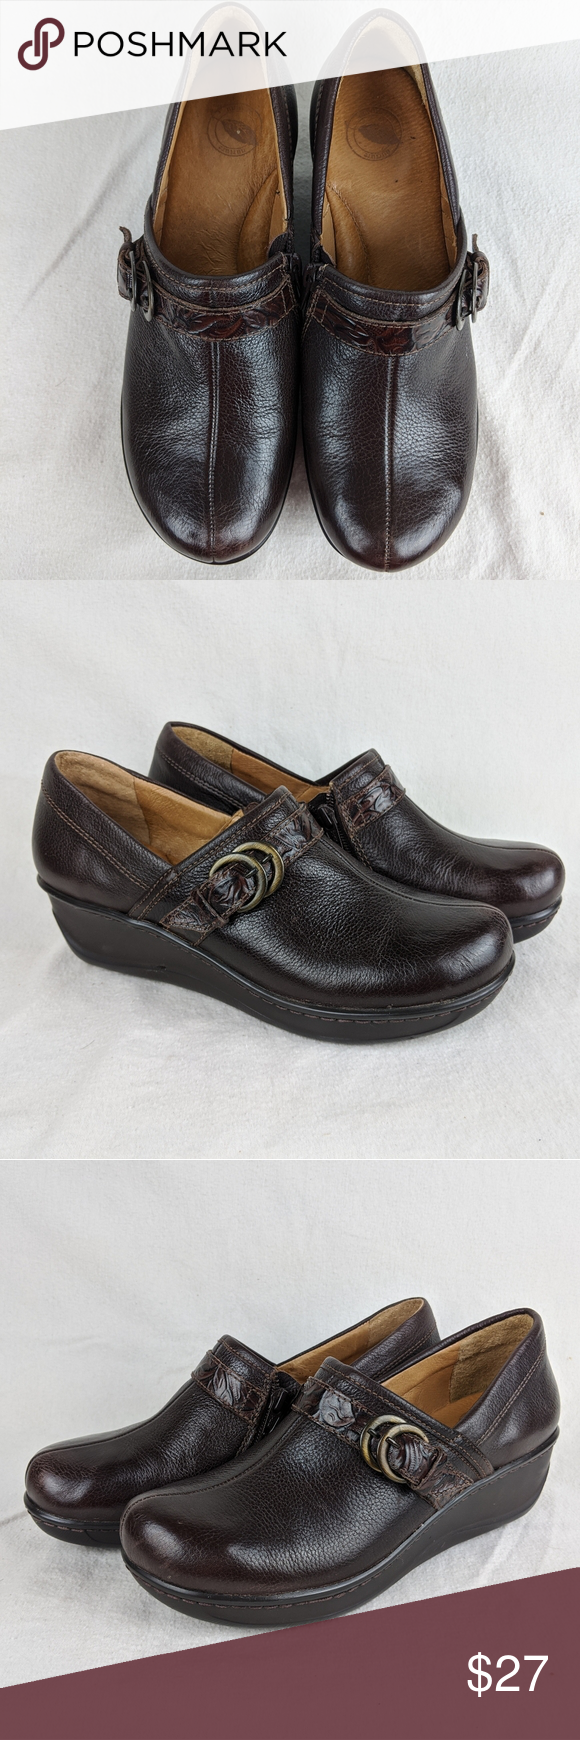 Shoes - Size 8.5M - Wedge - Heel height